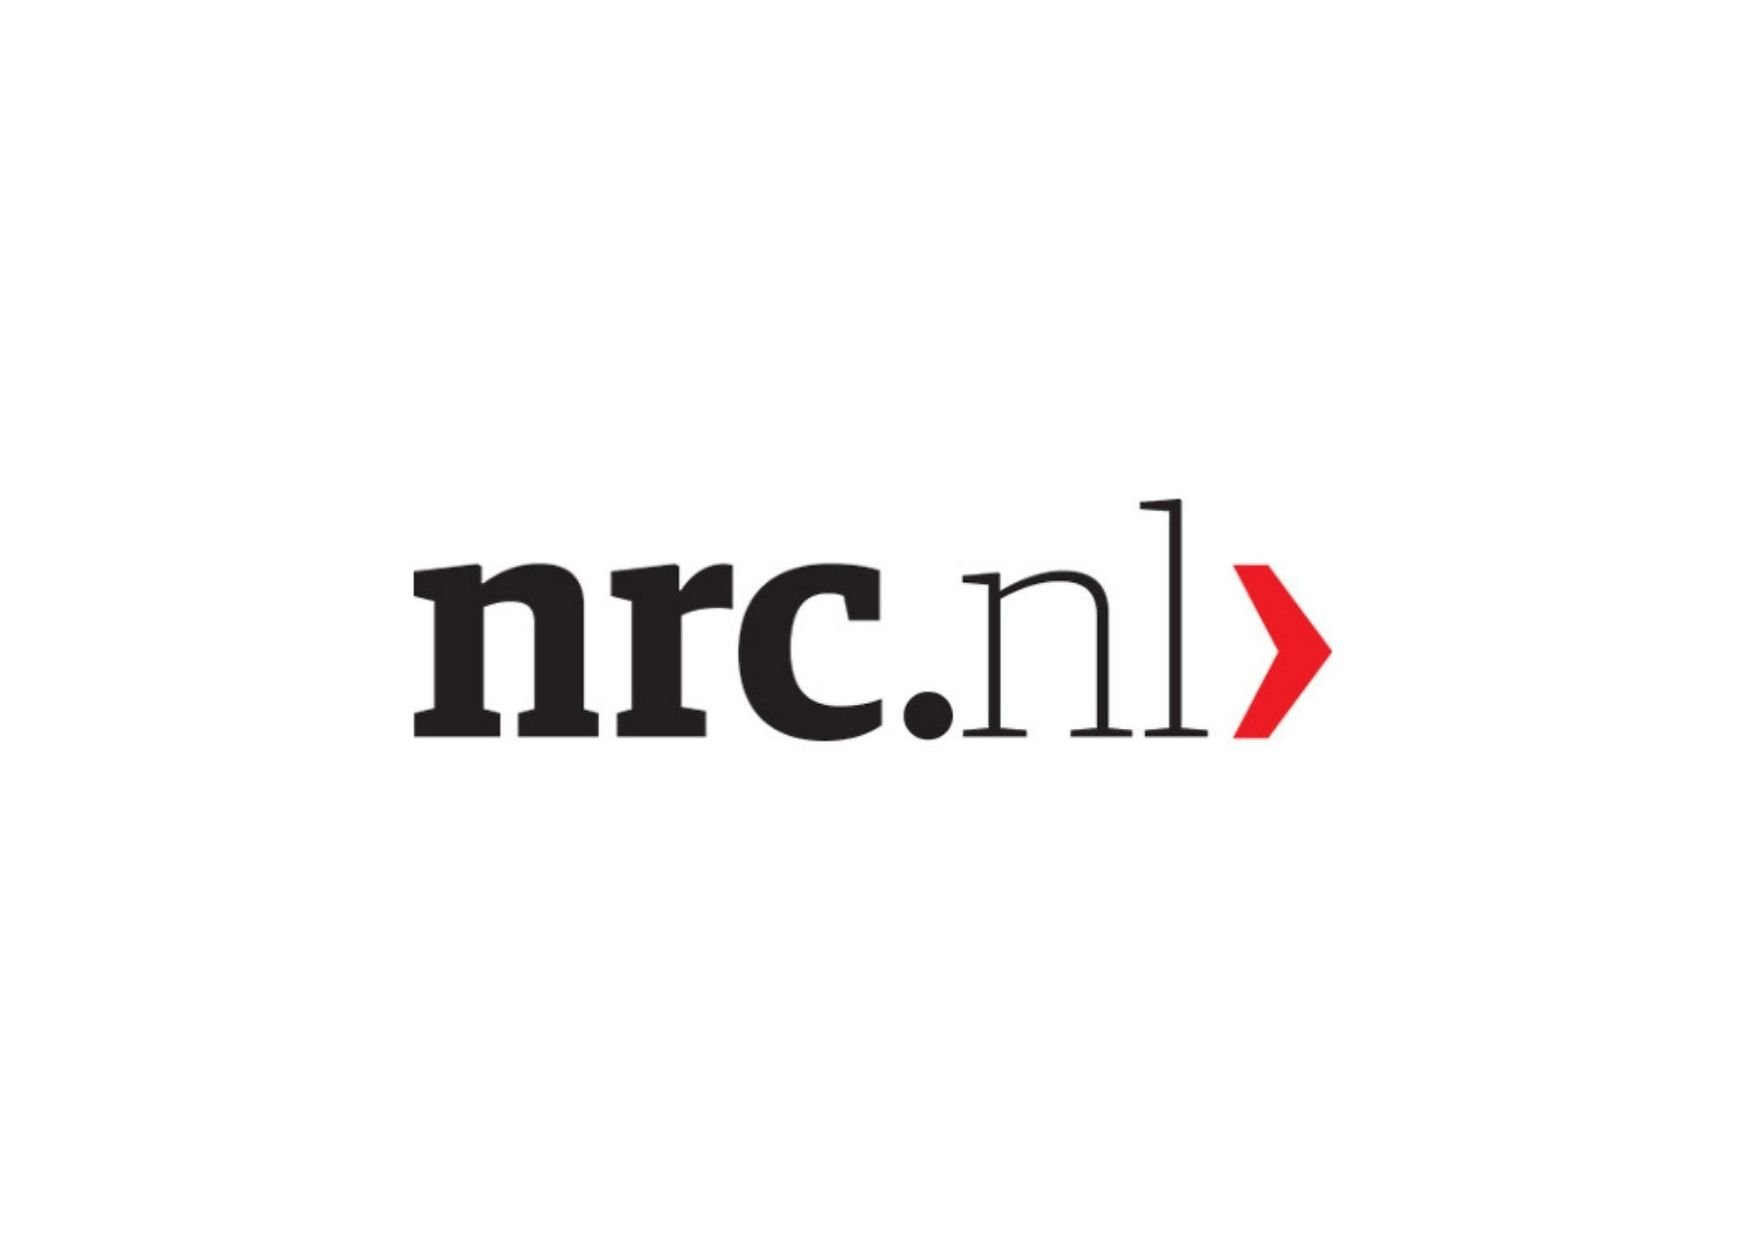 A 5 Star Review of The Lonely Century in NRC, Netherlands